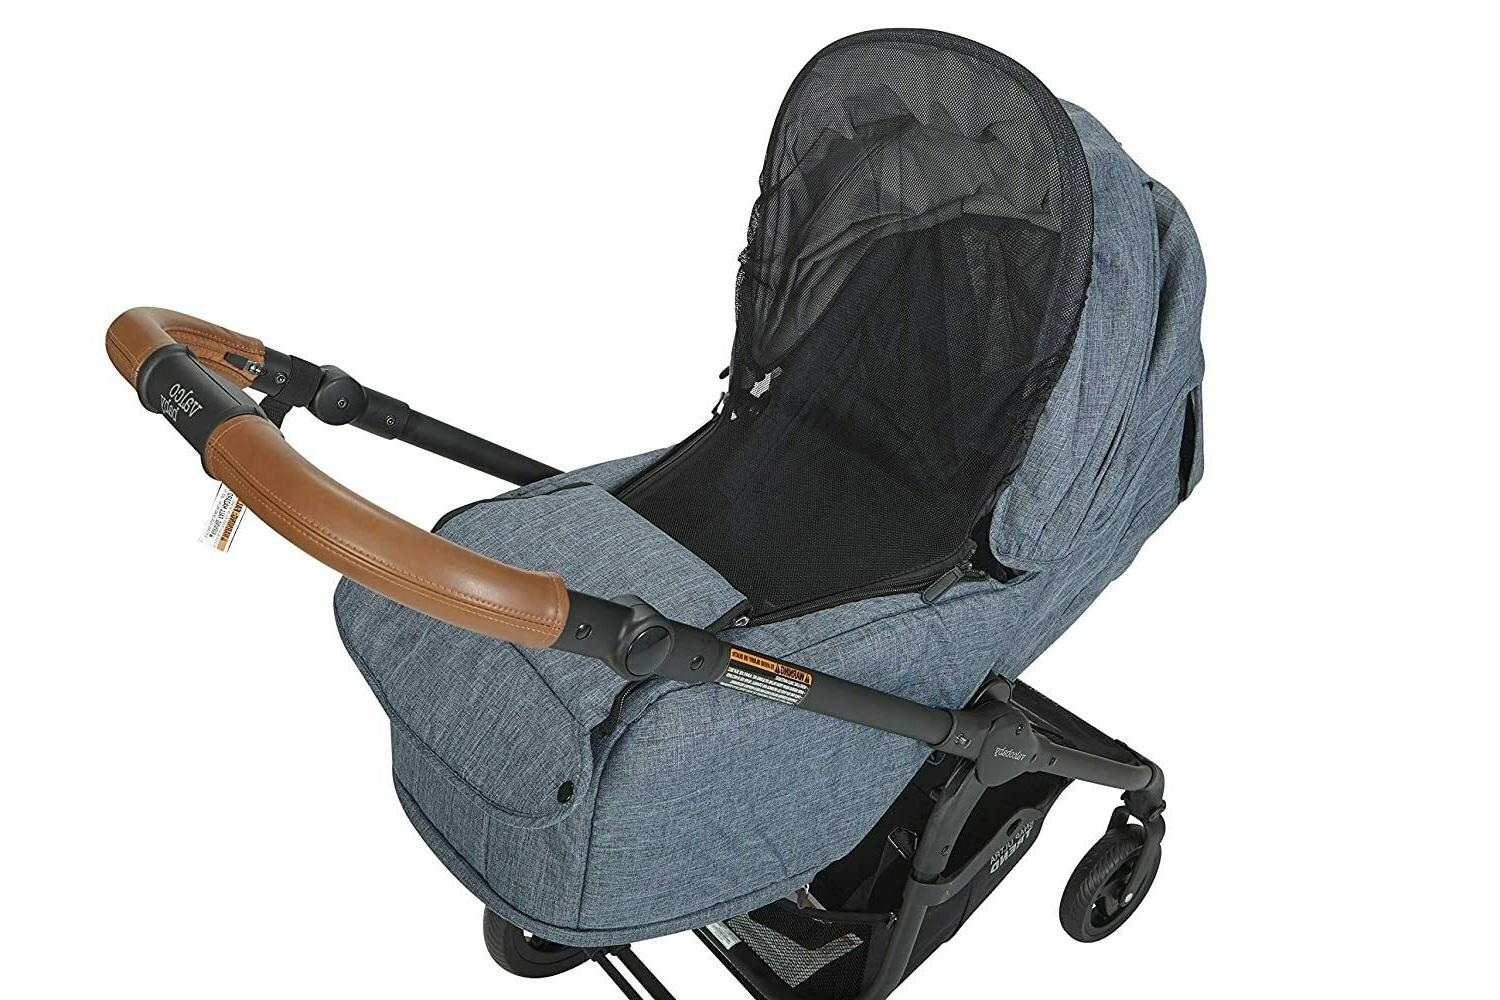 Valco Snap 4 Trend Stroller with Reversible Free Ship!